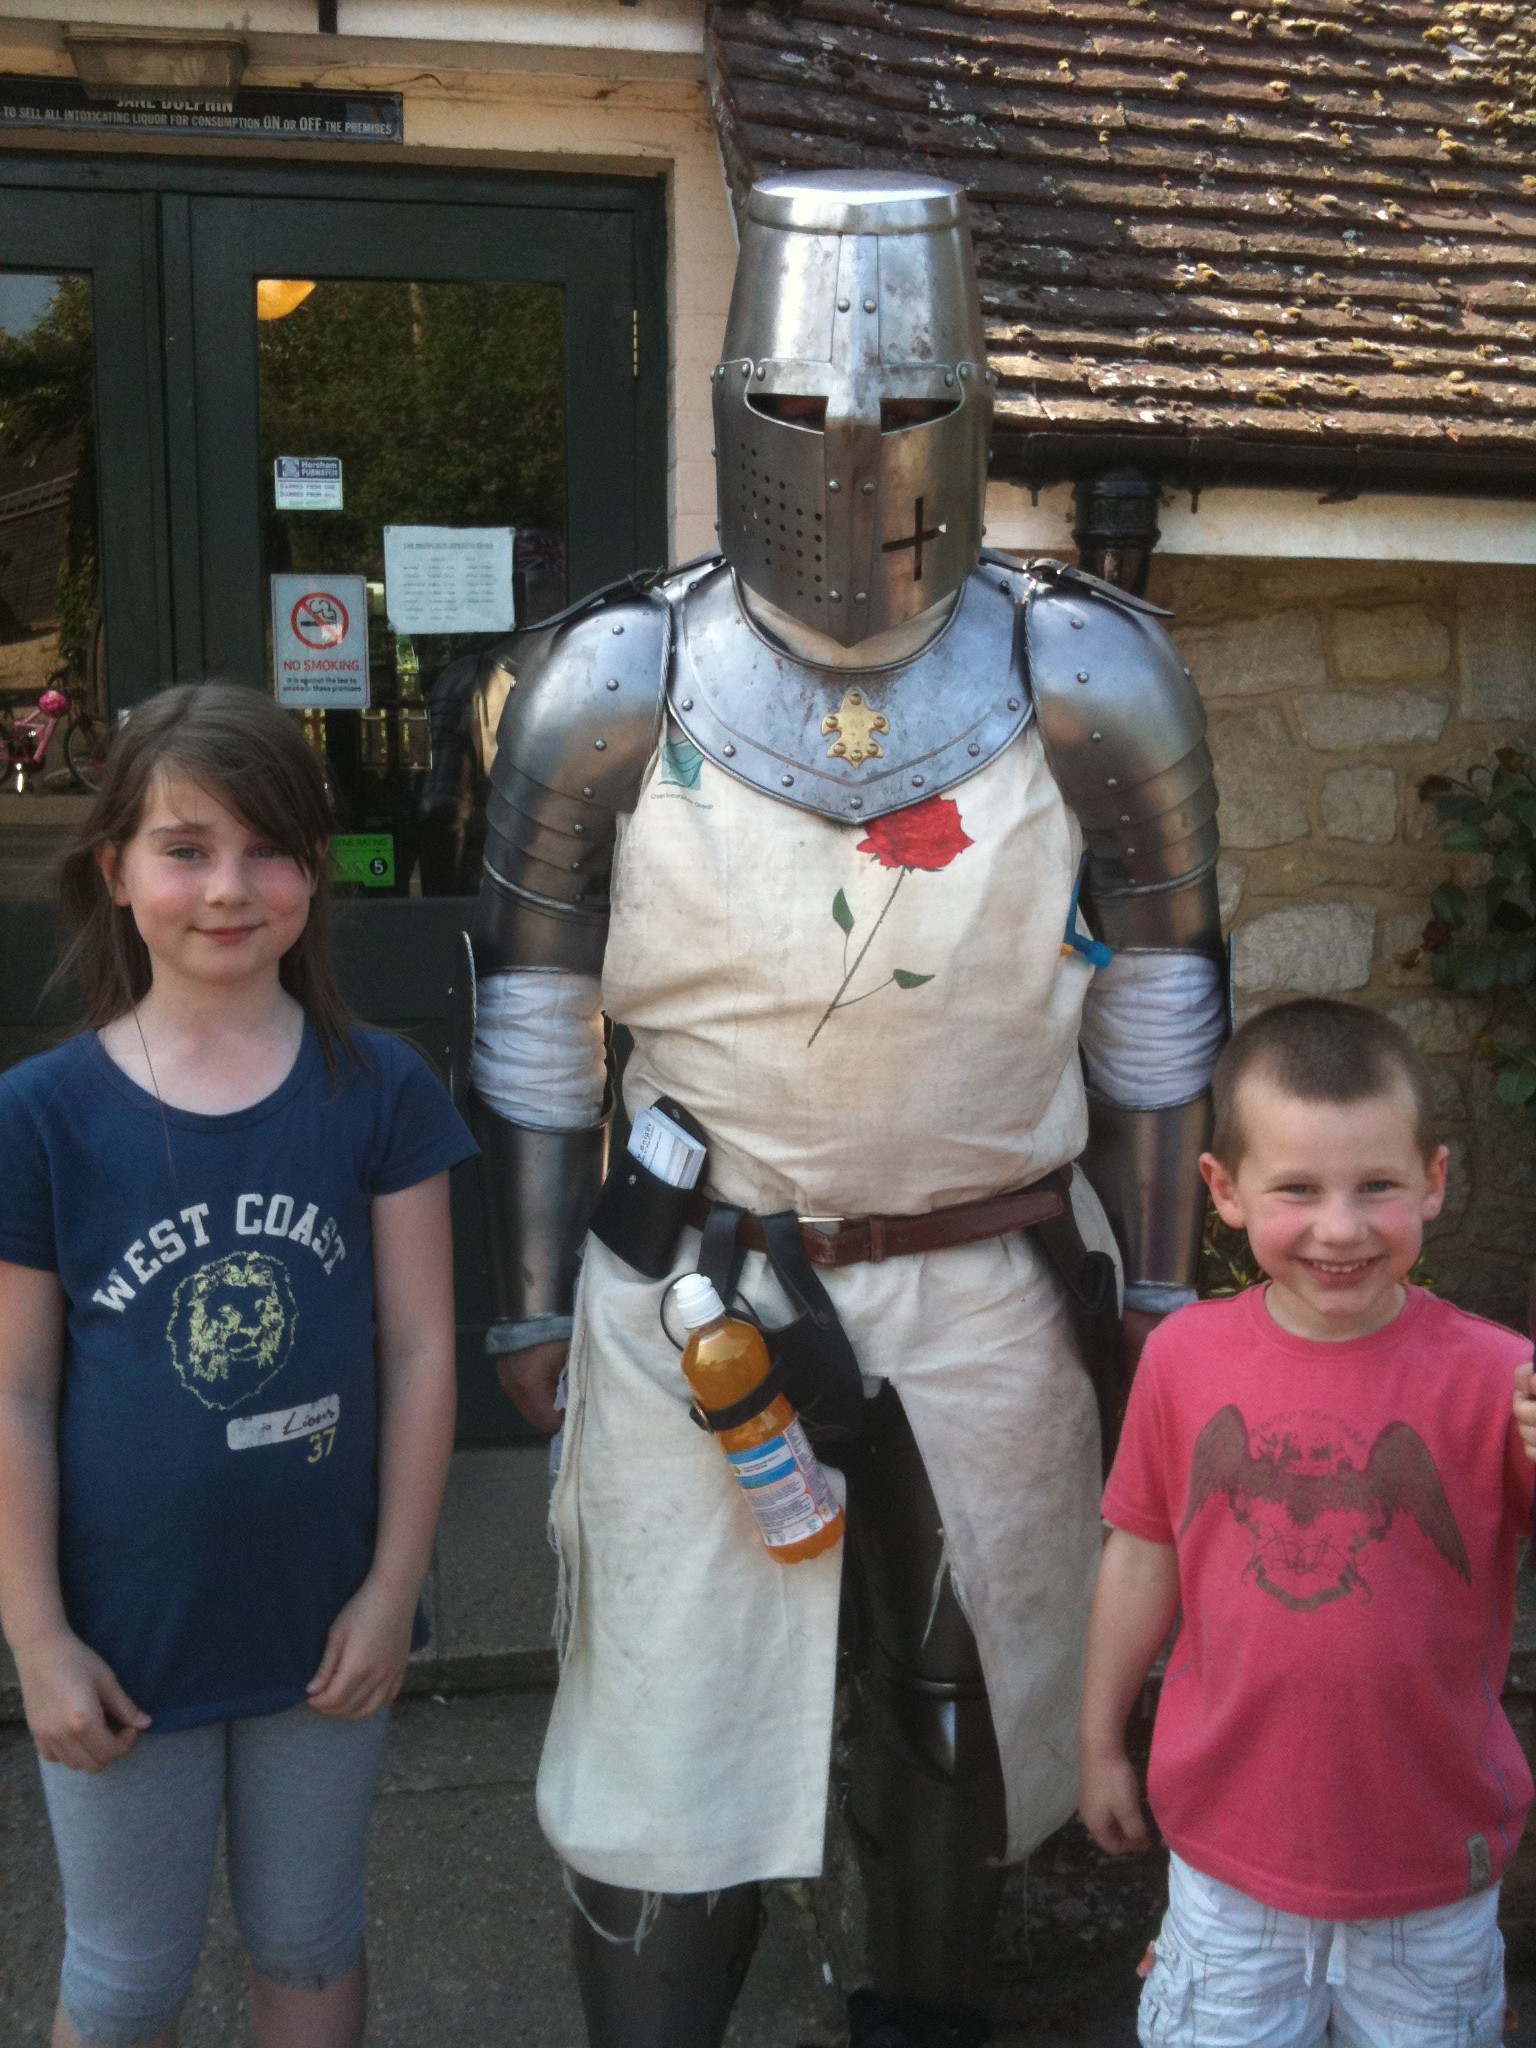 Tori & Richard Higglesden with The Lonely Knight at The Rising Sun